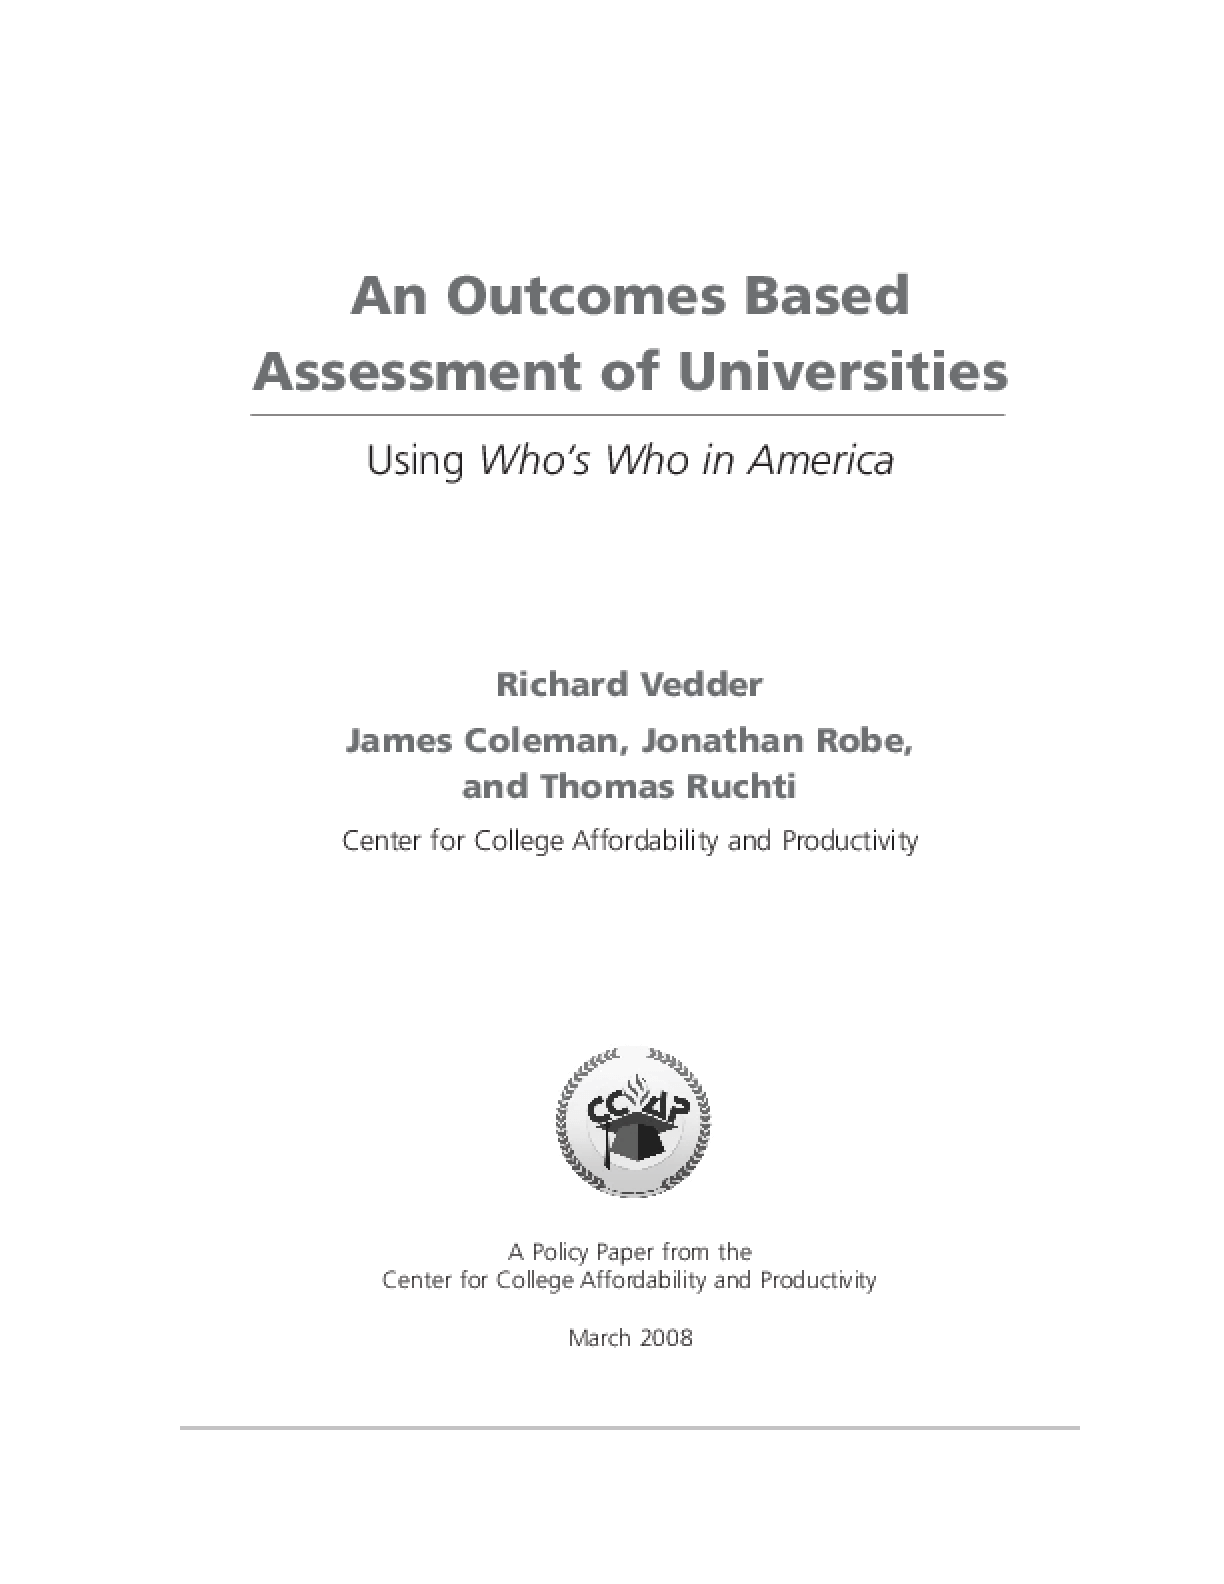 Outcomes Based Assessment of Universities